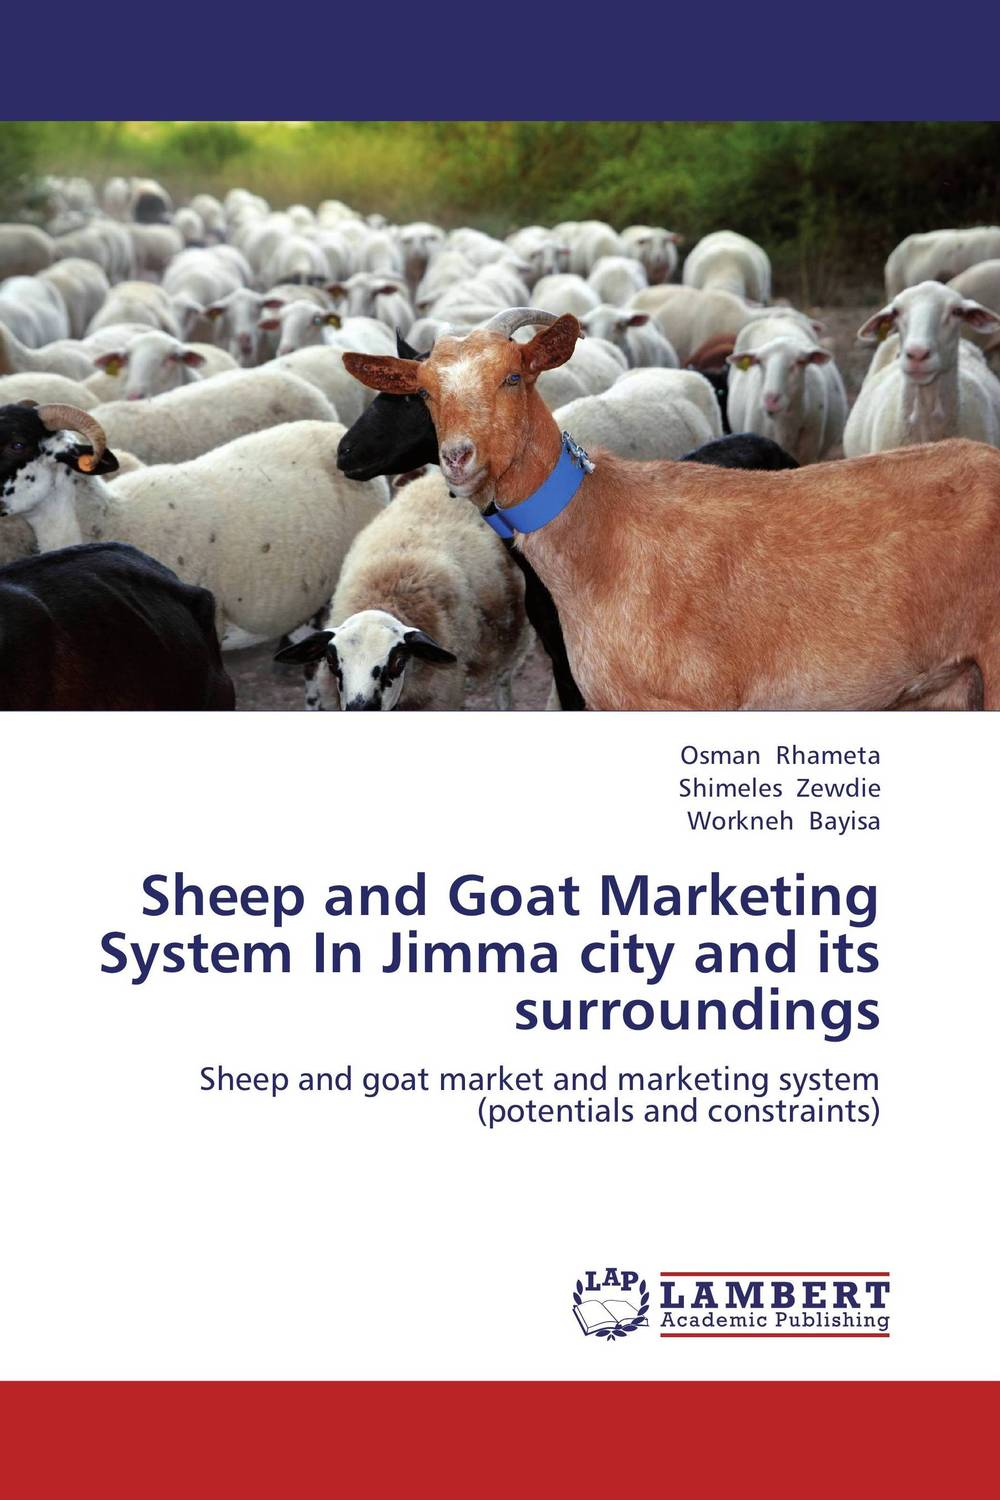 Sheep and Goat Marketing System In Jimma city and its surroundings